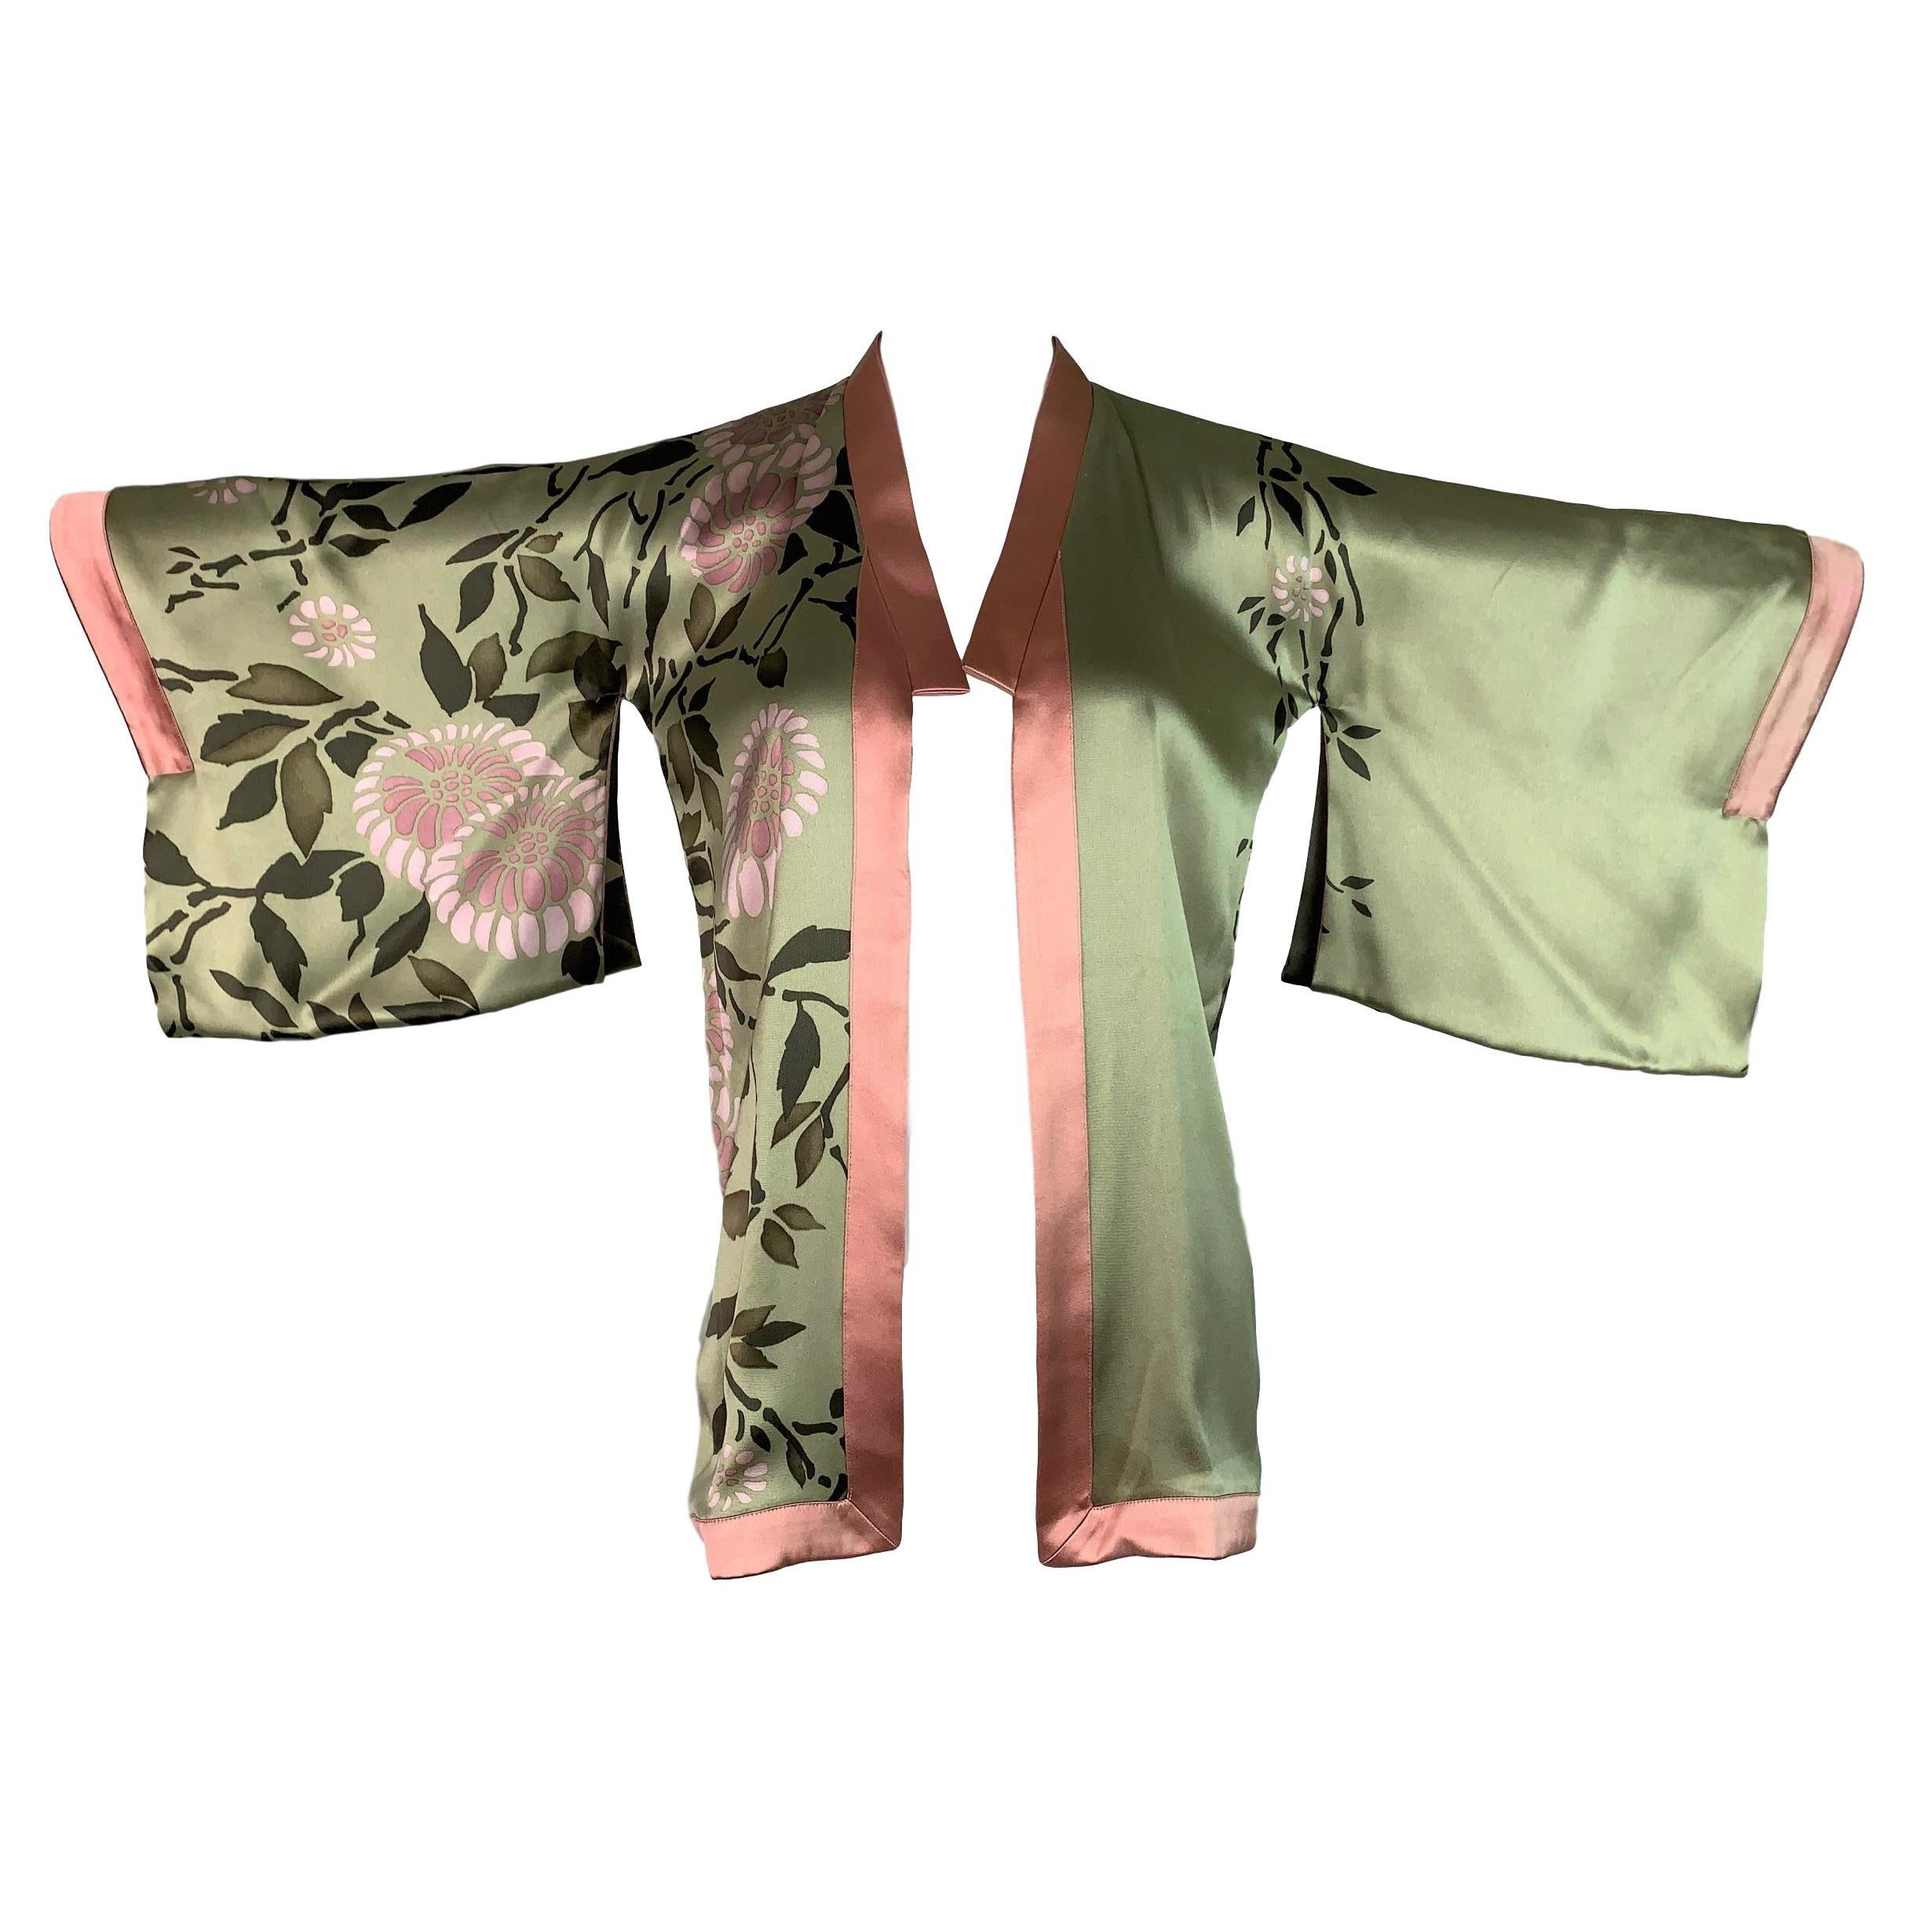 S/S 2003 Gucci by Tom Ford Documented Silk Green Pink Kimono Top